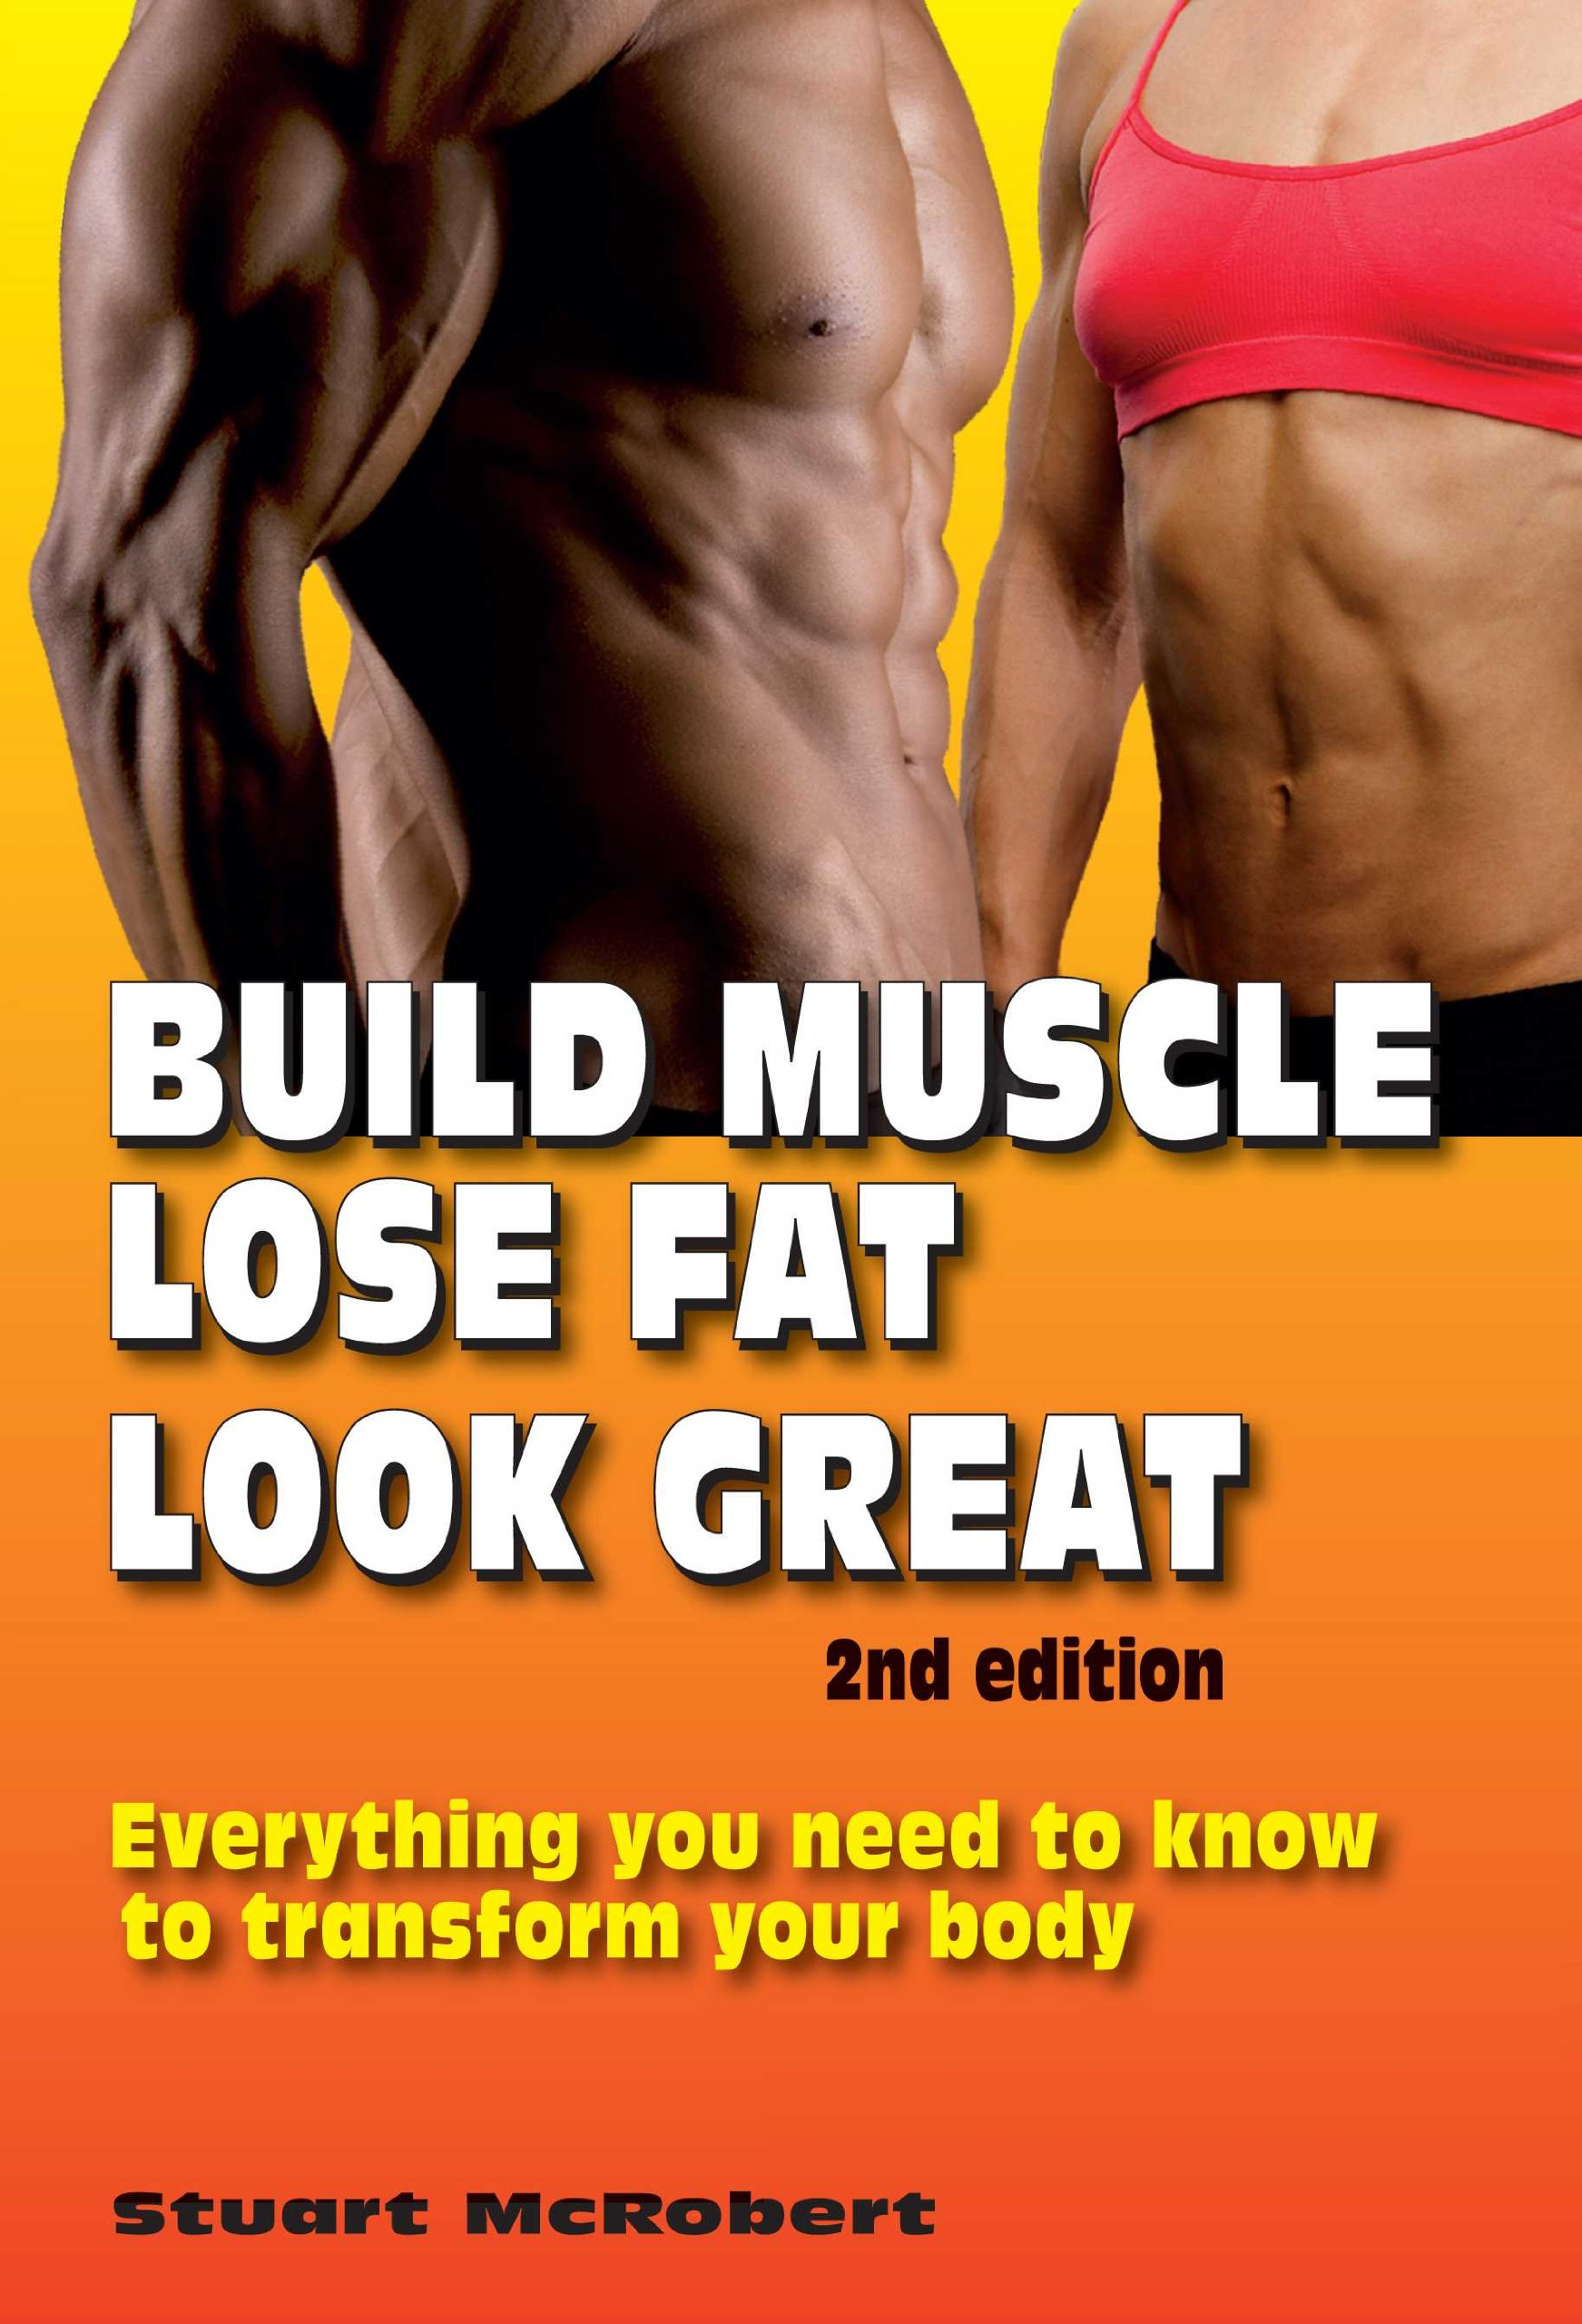 Build Muscle, Lose Fat, Look Great, 2nd Edition - Stuart McRobert